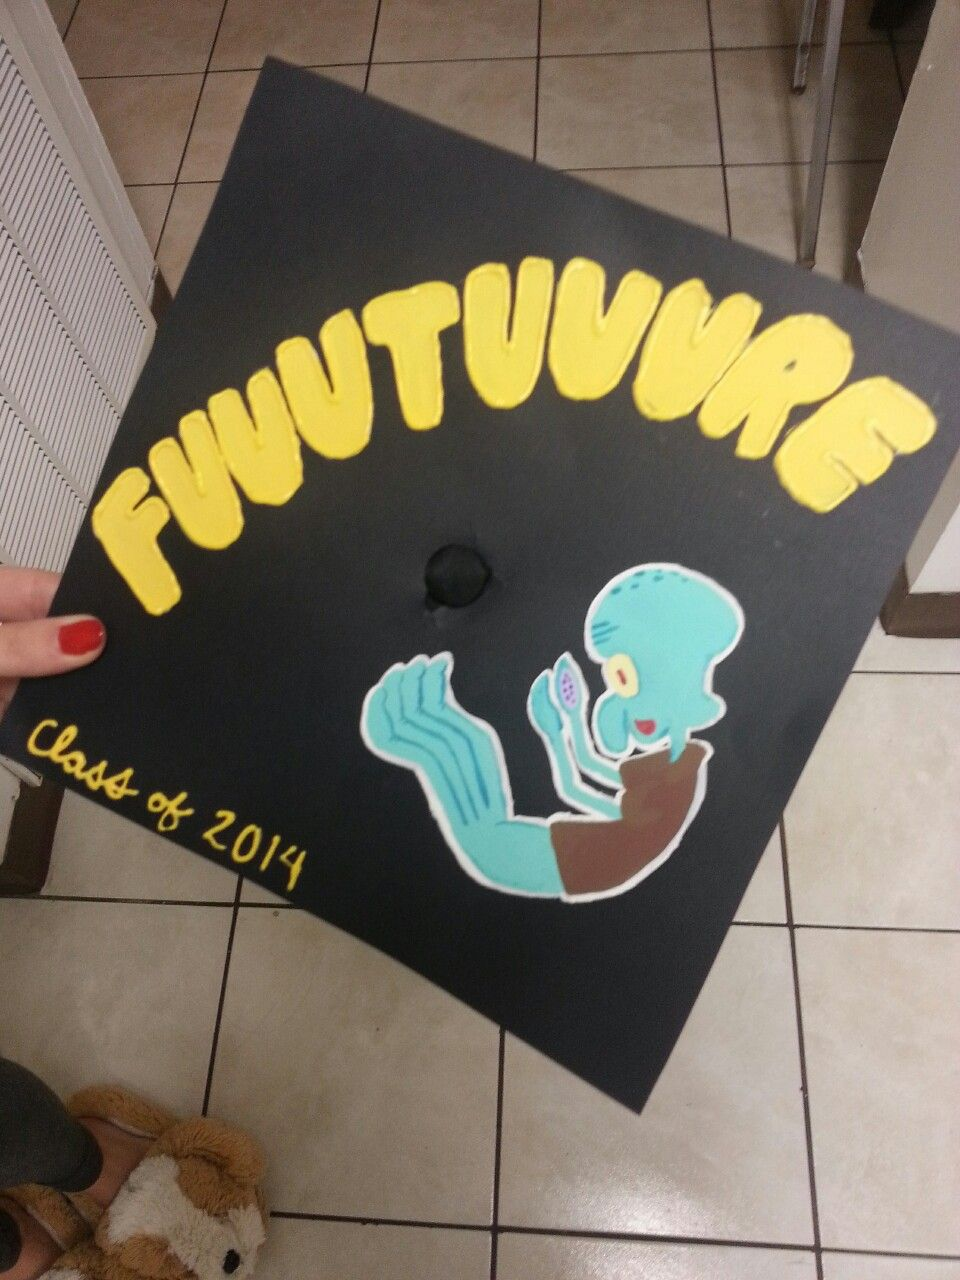 Fullsize Of Funny Graduation Caps